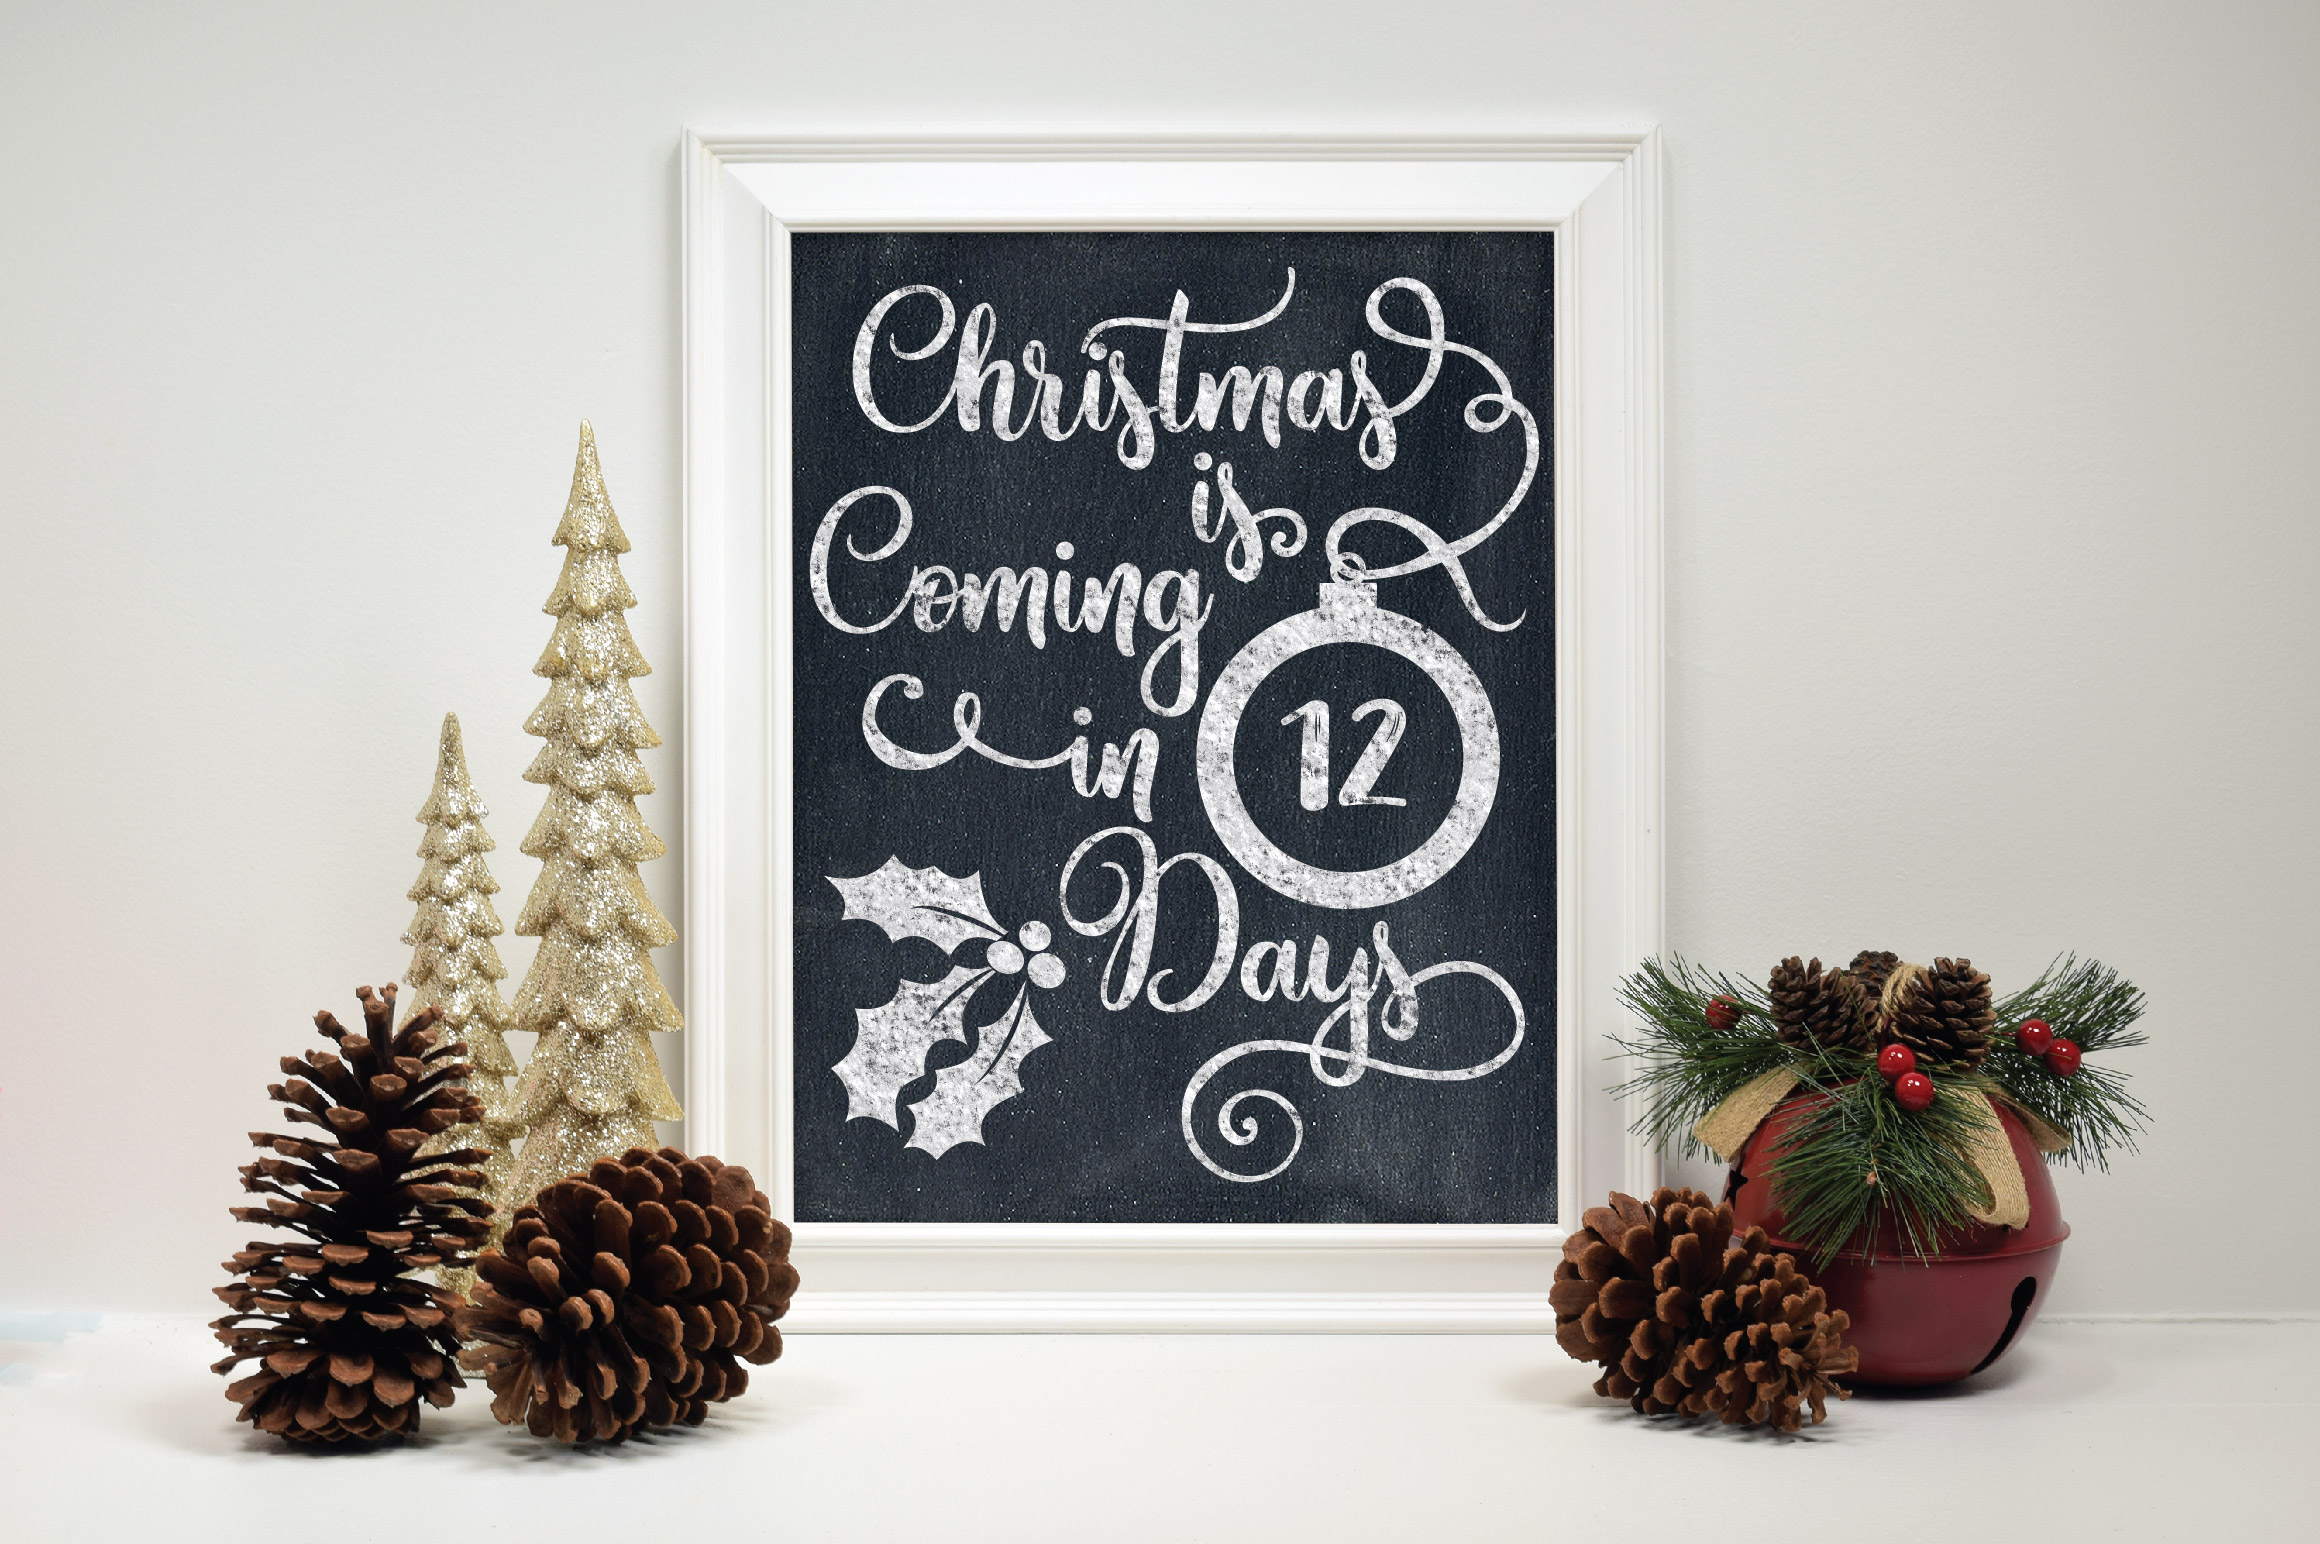 Christmas Countdown SVG Cut File - Christmas Ornament SVG example image 3